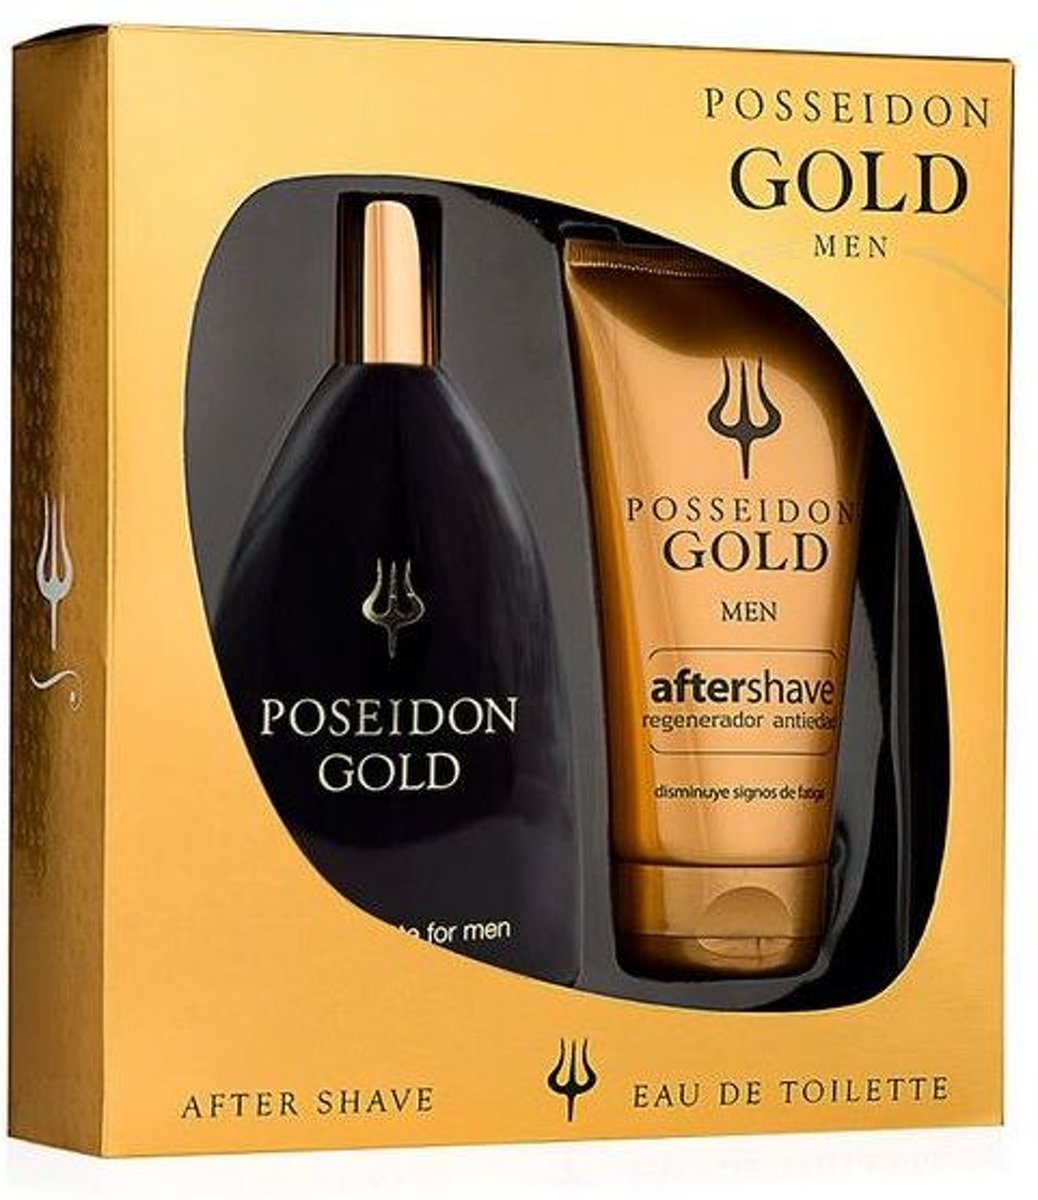 Poseidon Gold Men Lote 2 Pz - Beauty & Health